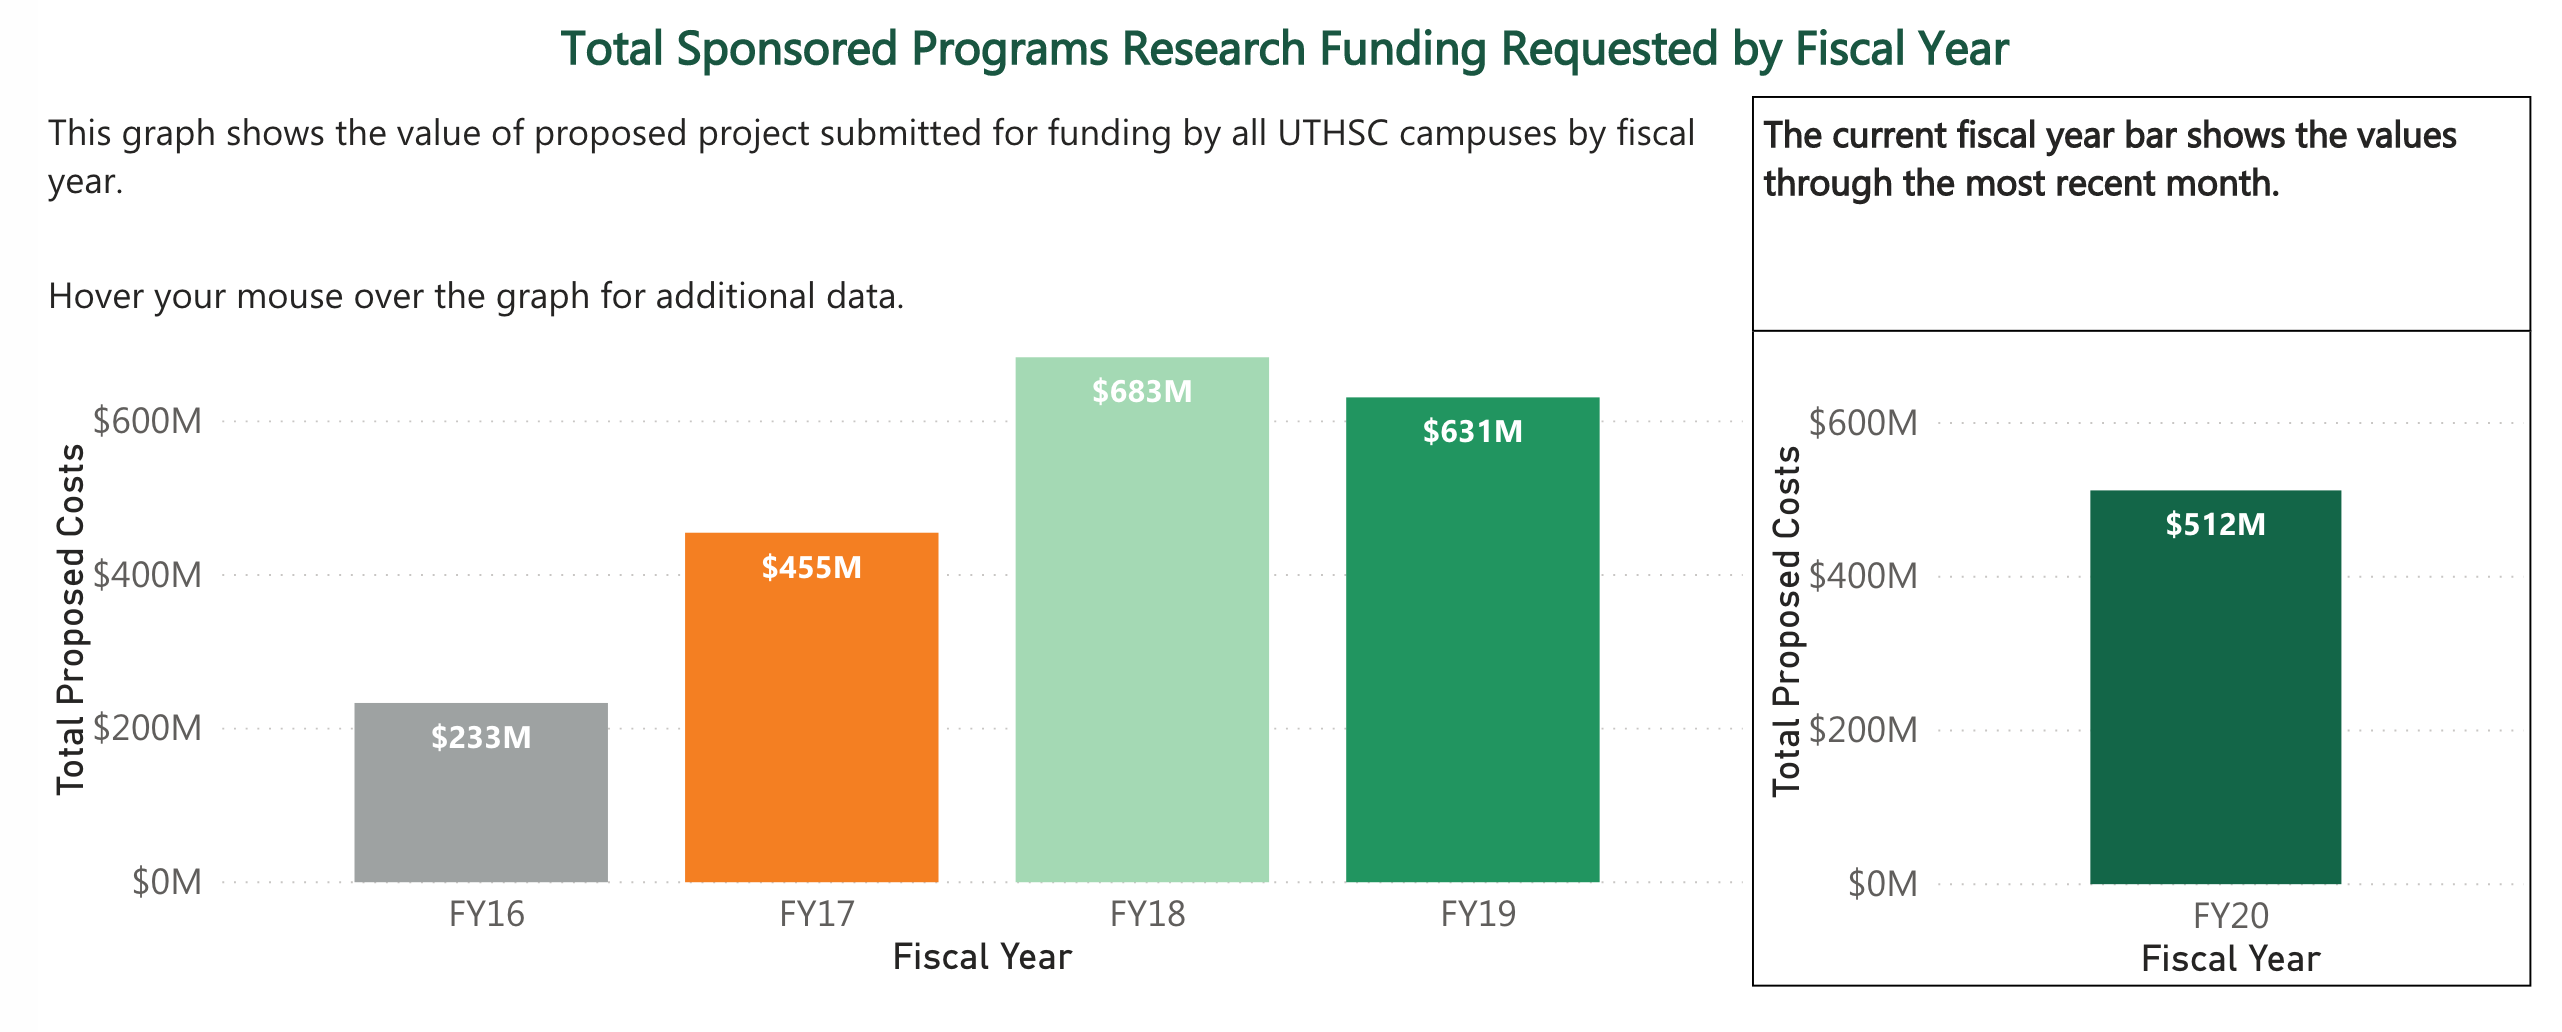 Total Sponsored Programs Research Funding Requested by Fiscal Year